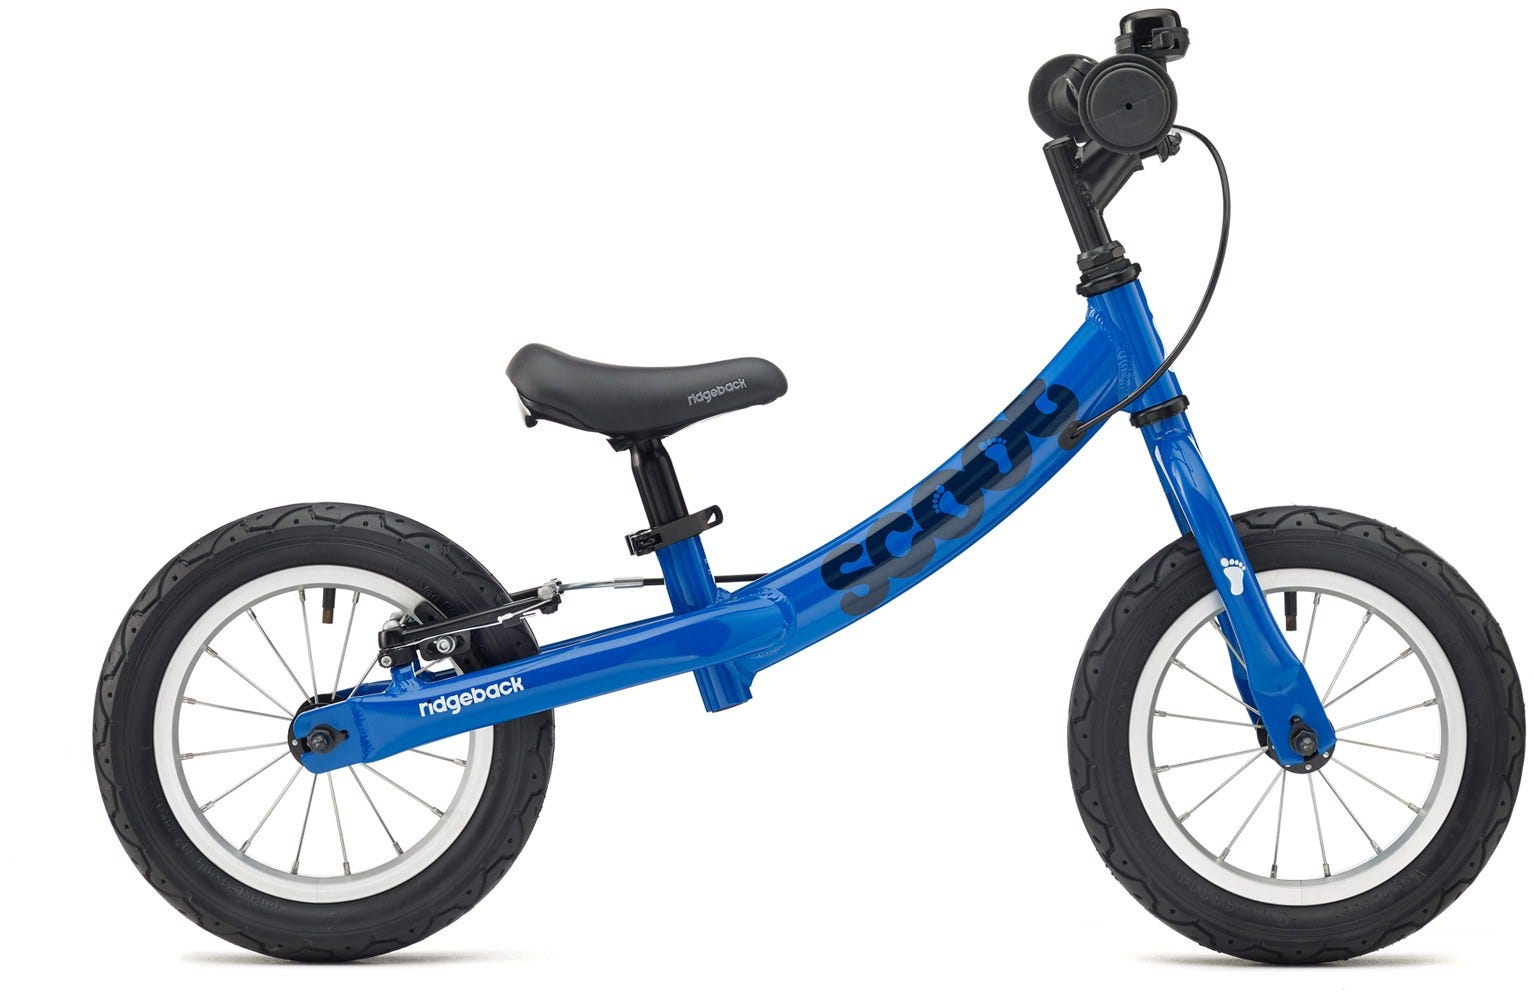 Ridgeback Scoot 2018 - Youth Beginner Bike